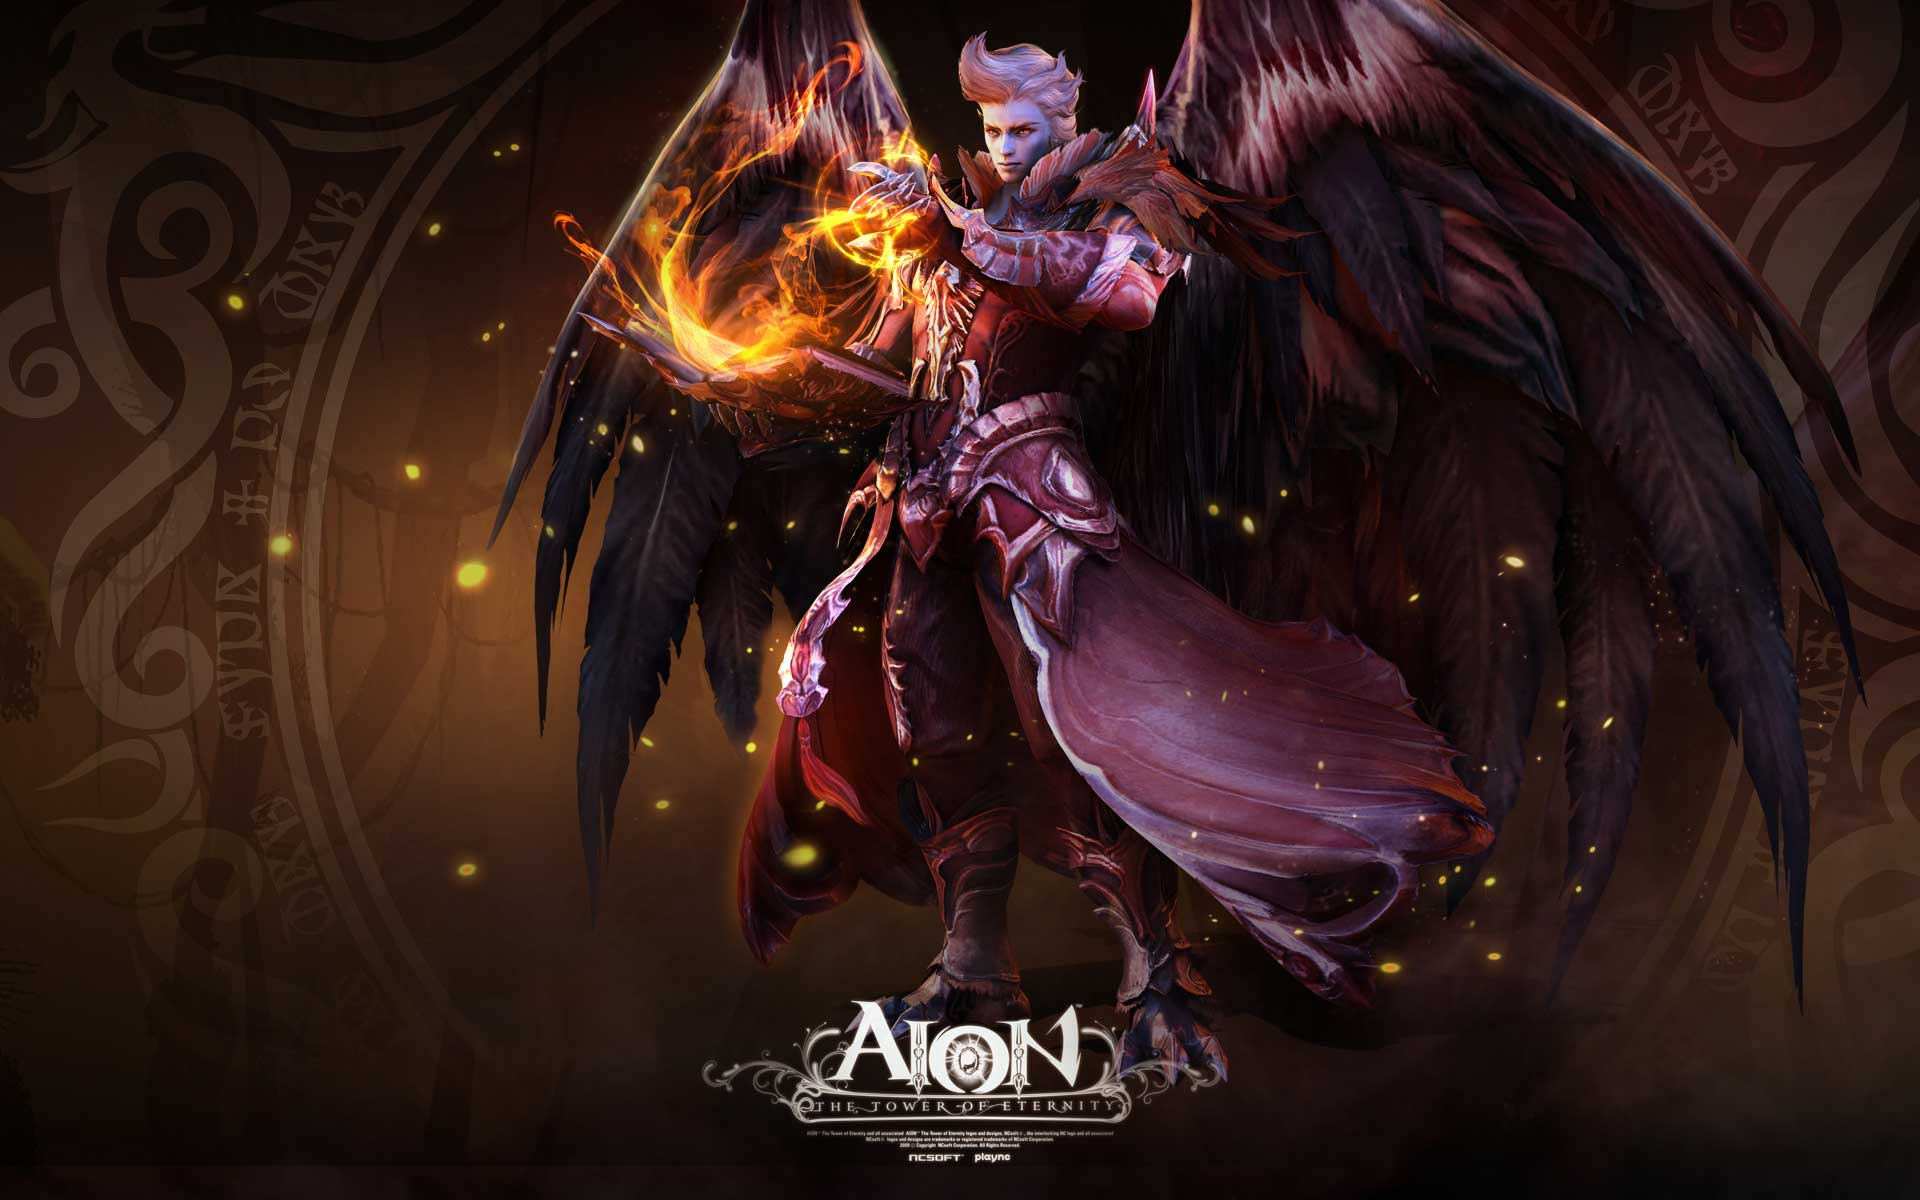 Aion Wallpaper Hd wallpaper   145614 1920x1200